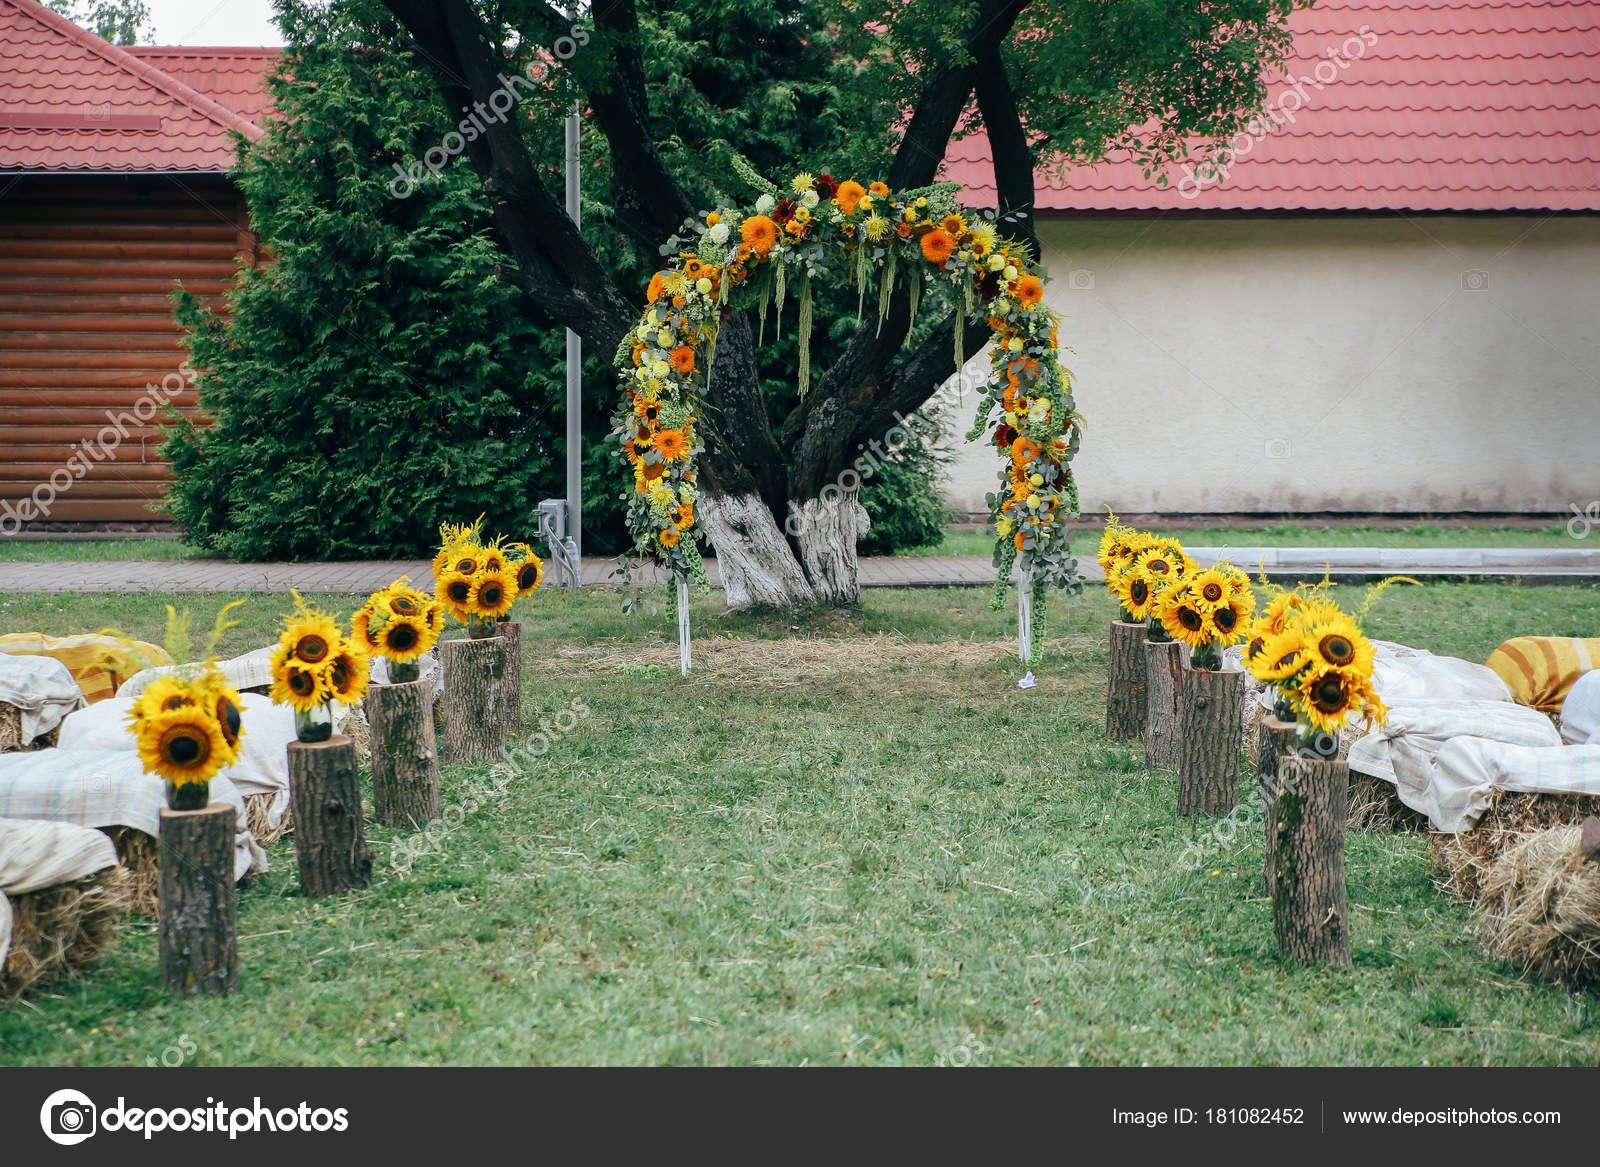 Rustic Arch For Wedding | Floral Rustic Arch Wedding Ceremony Sunflowers Wooden Decorations